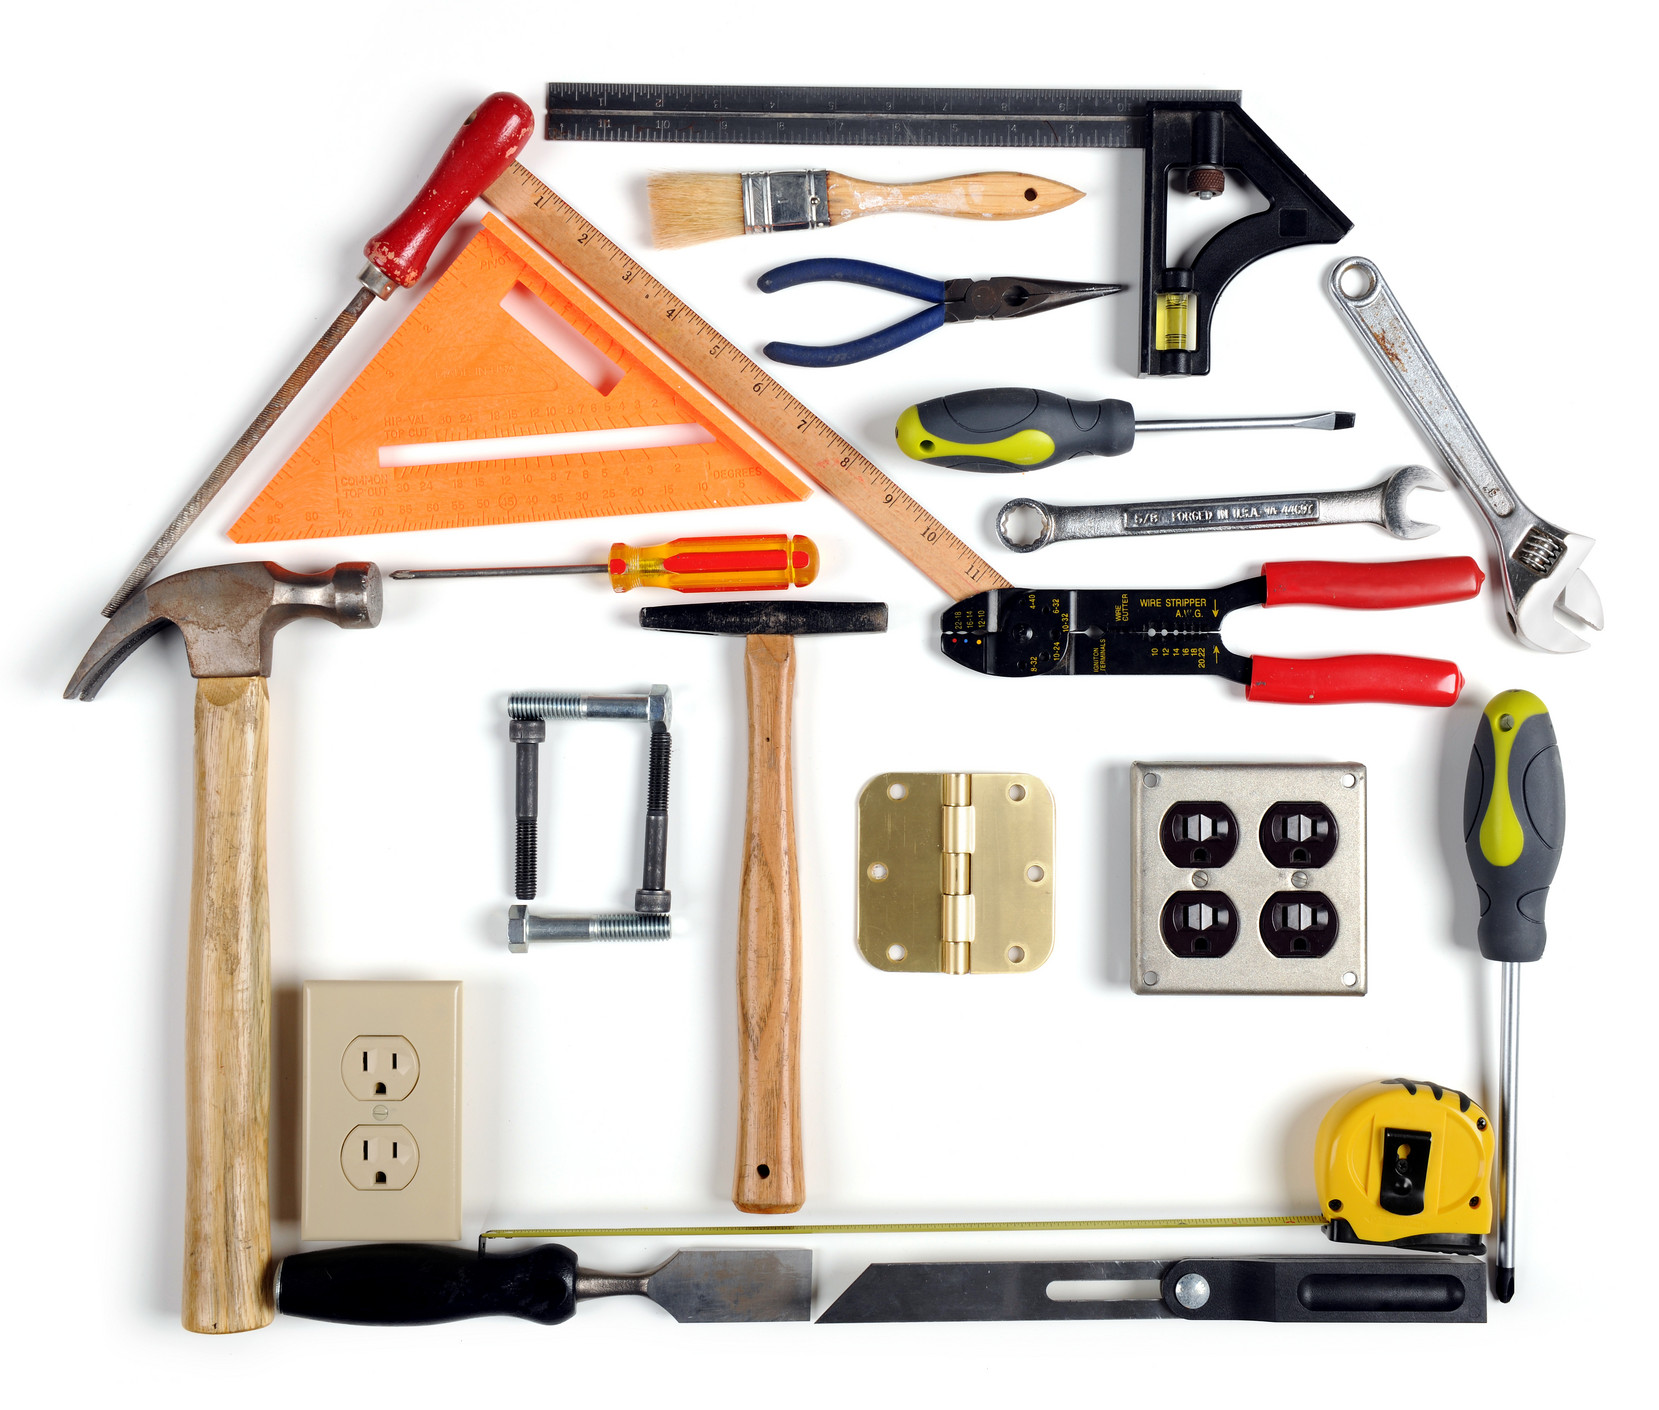 Home Improvement Web Designs